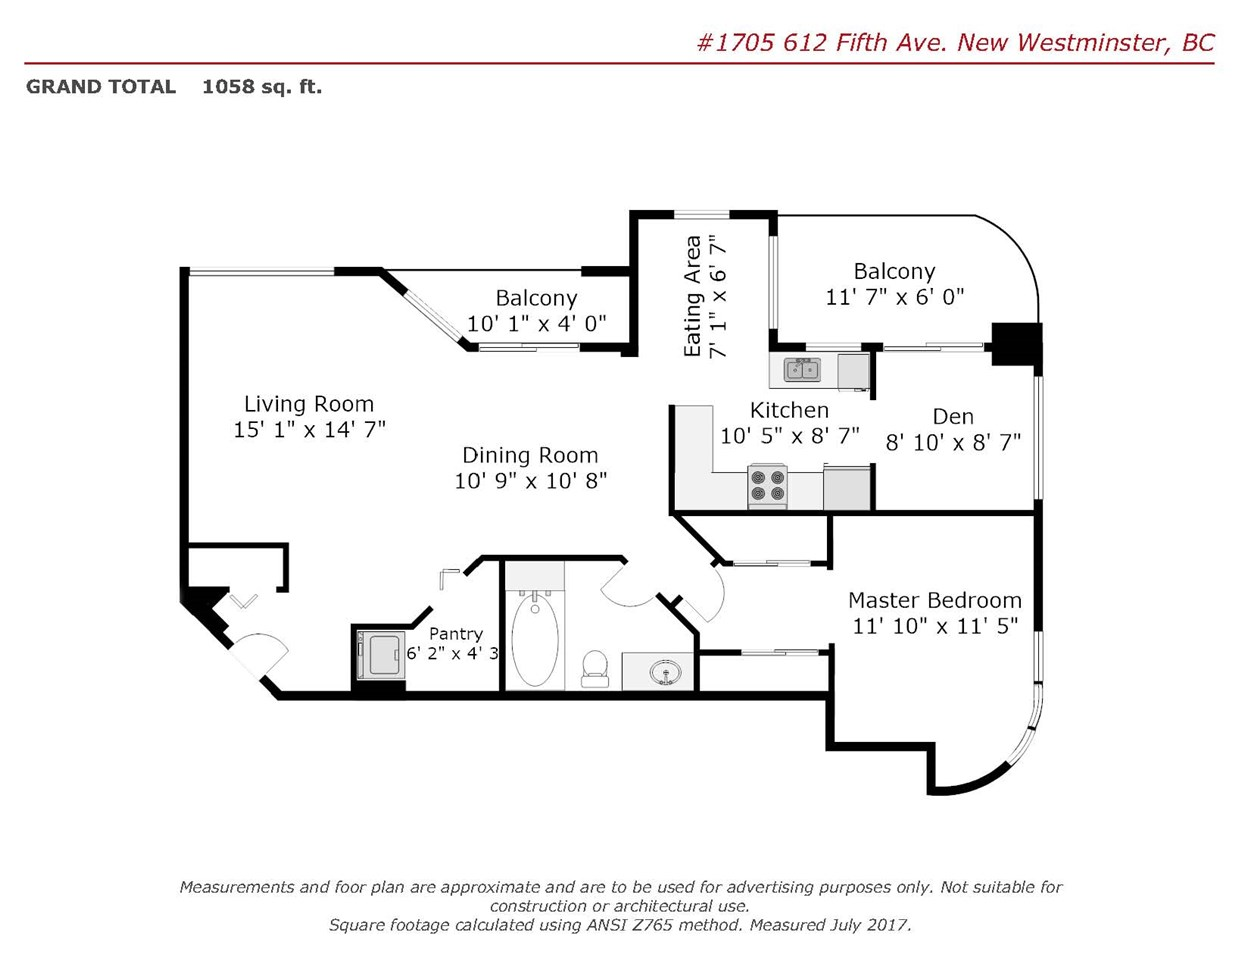 Condo Apartment at 1705 612 FIFTH AVENUE, Unit 1705, New Westminster, British Columbia. Image 2